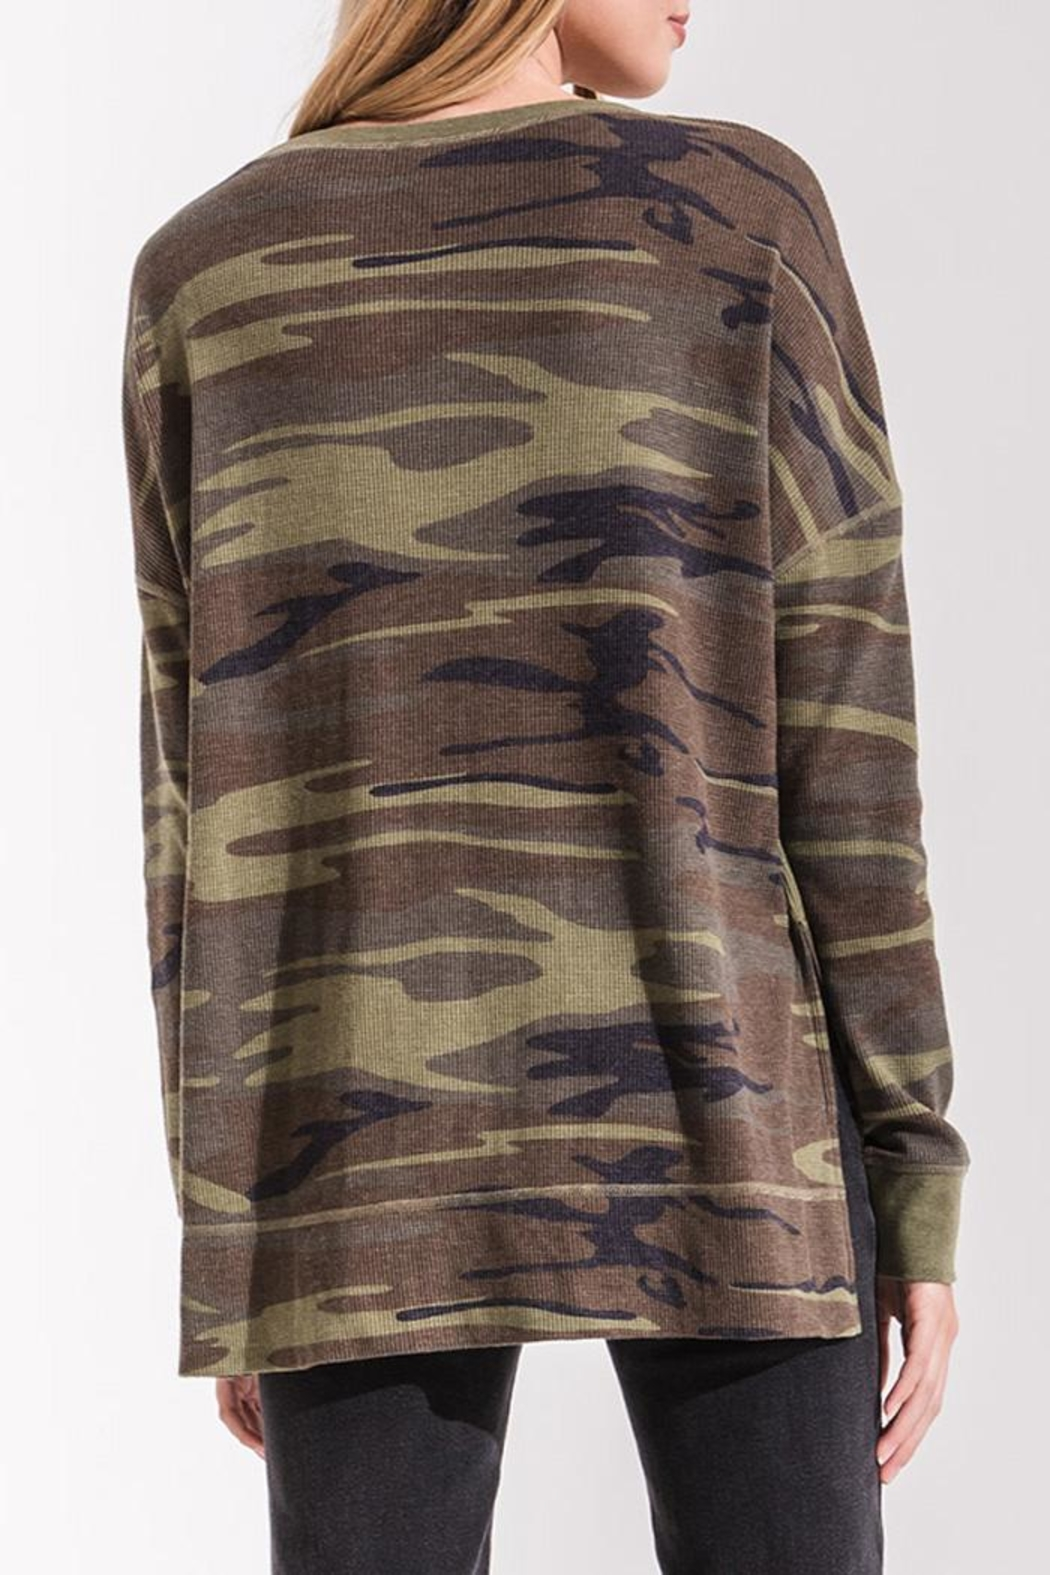 z supply Camo Thermal Top - Back Cropped Image